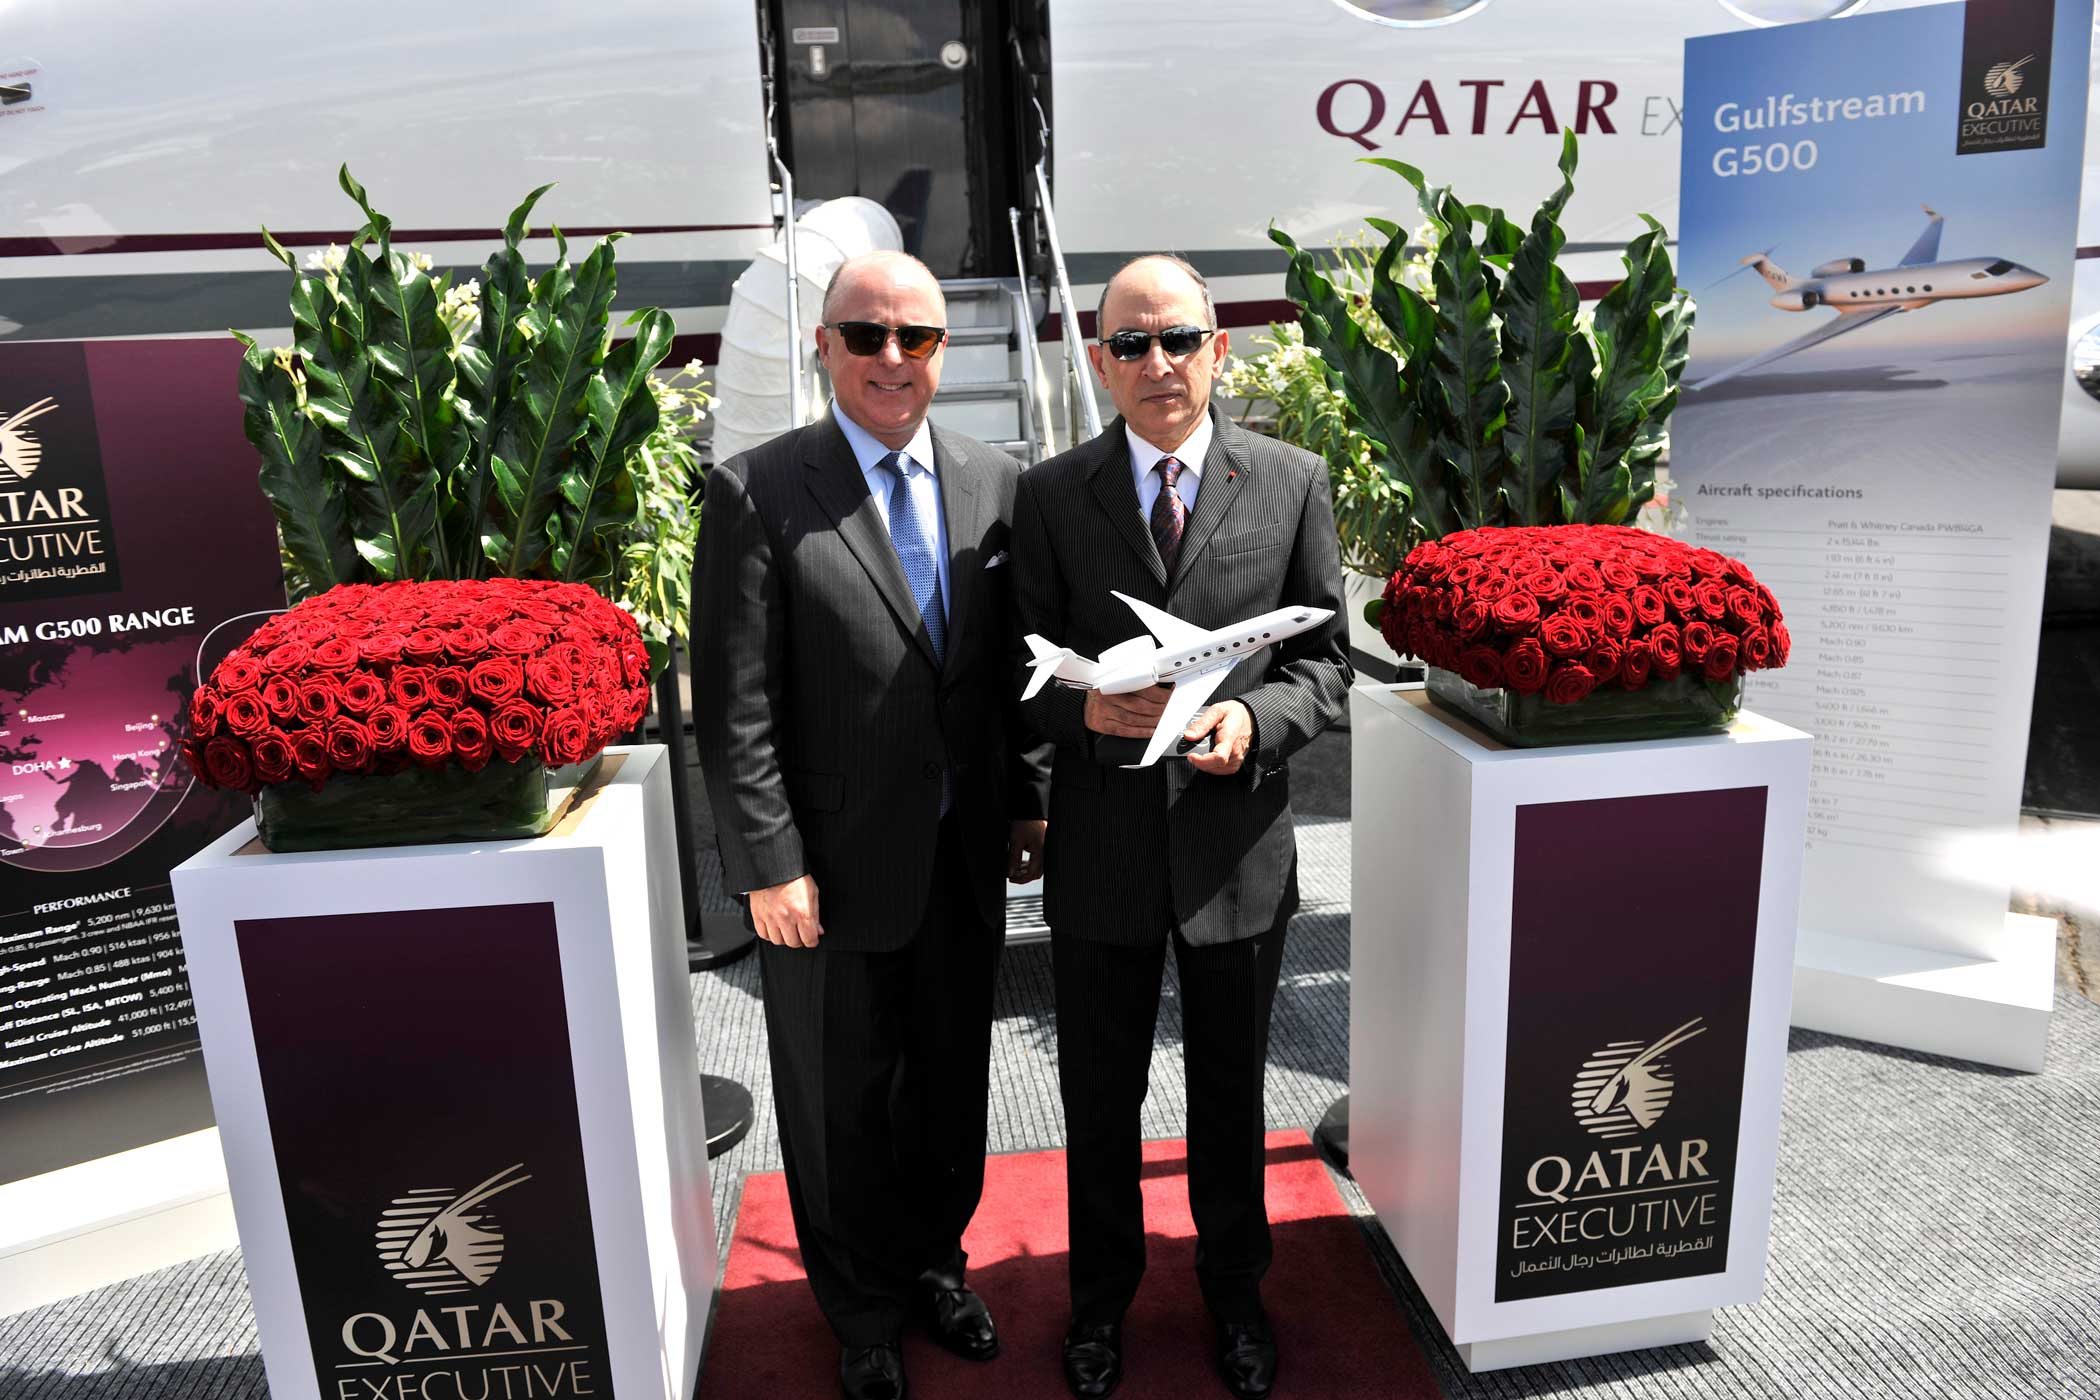 Qatar Charter Arm Welcomes Newest Offering | Business